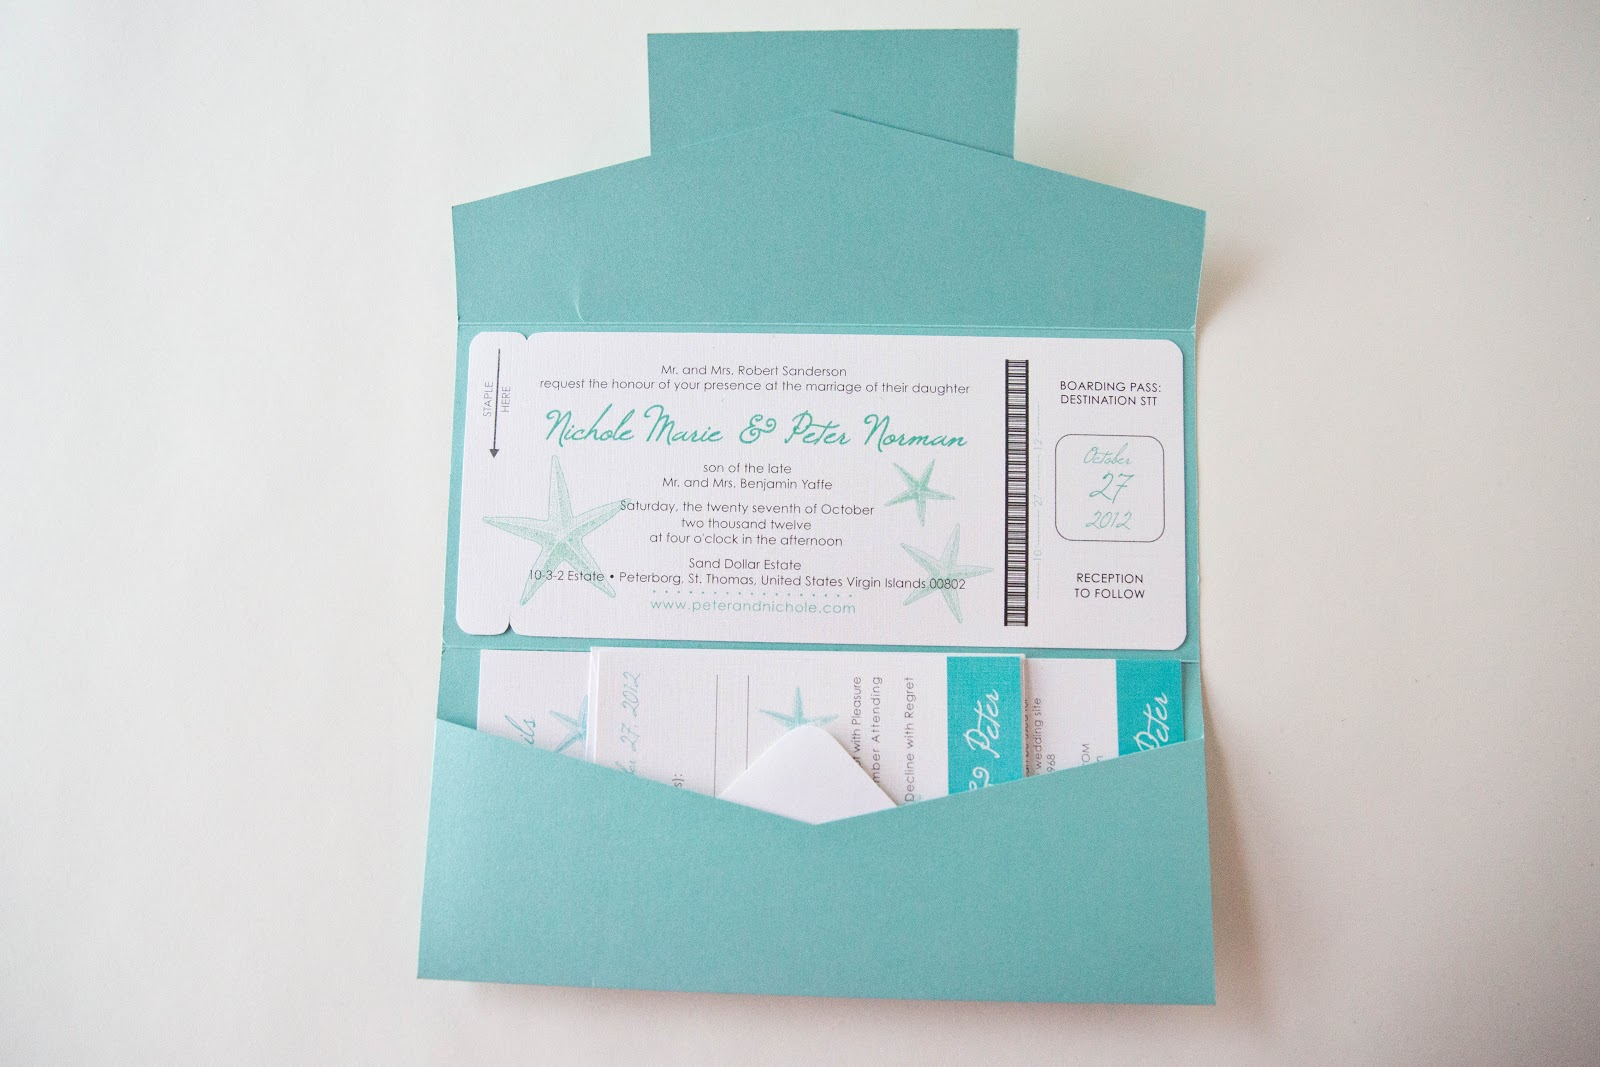 Passport Pocket Style Invitations • Destination Wedding Invitations ...